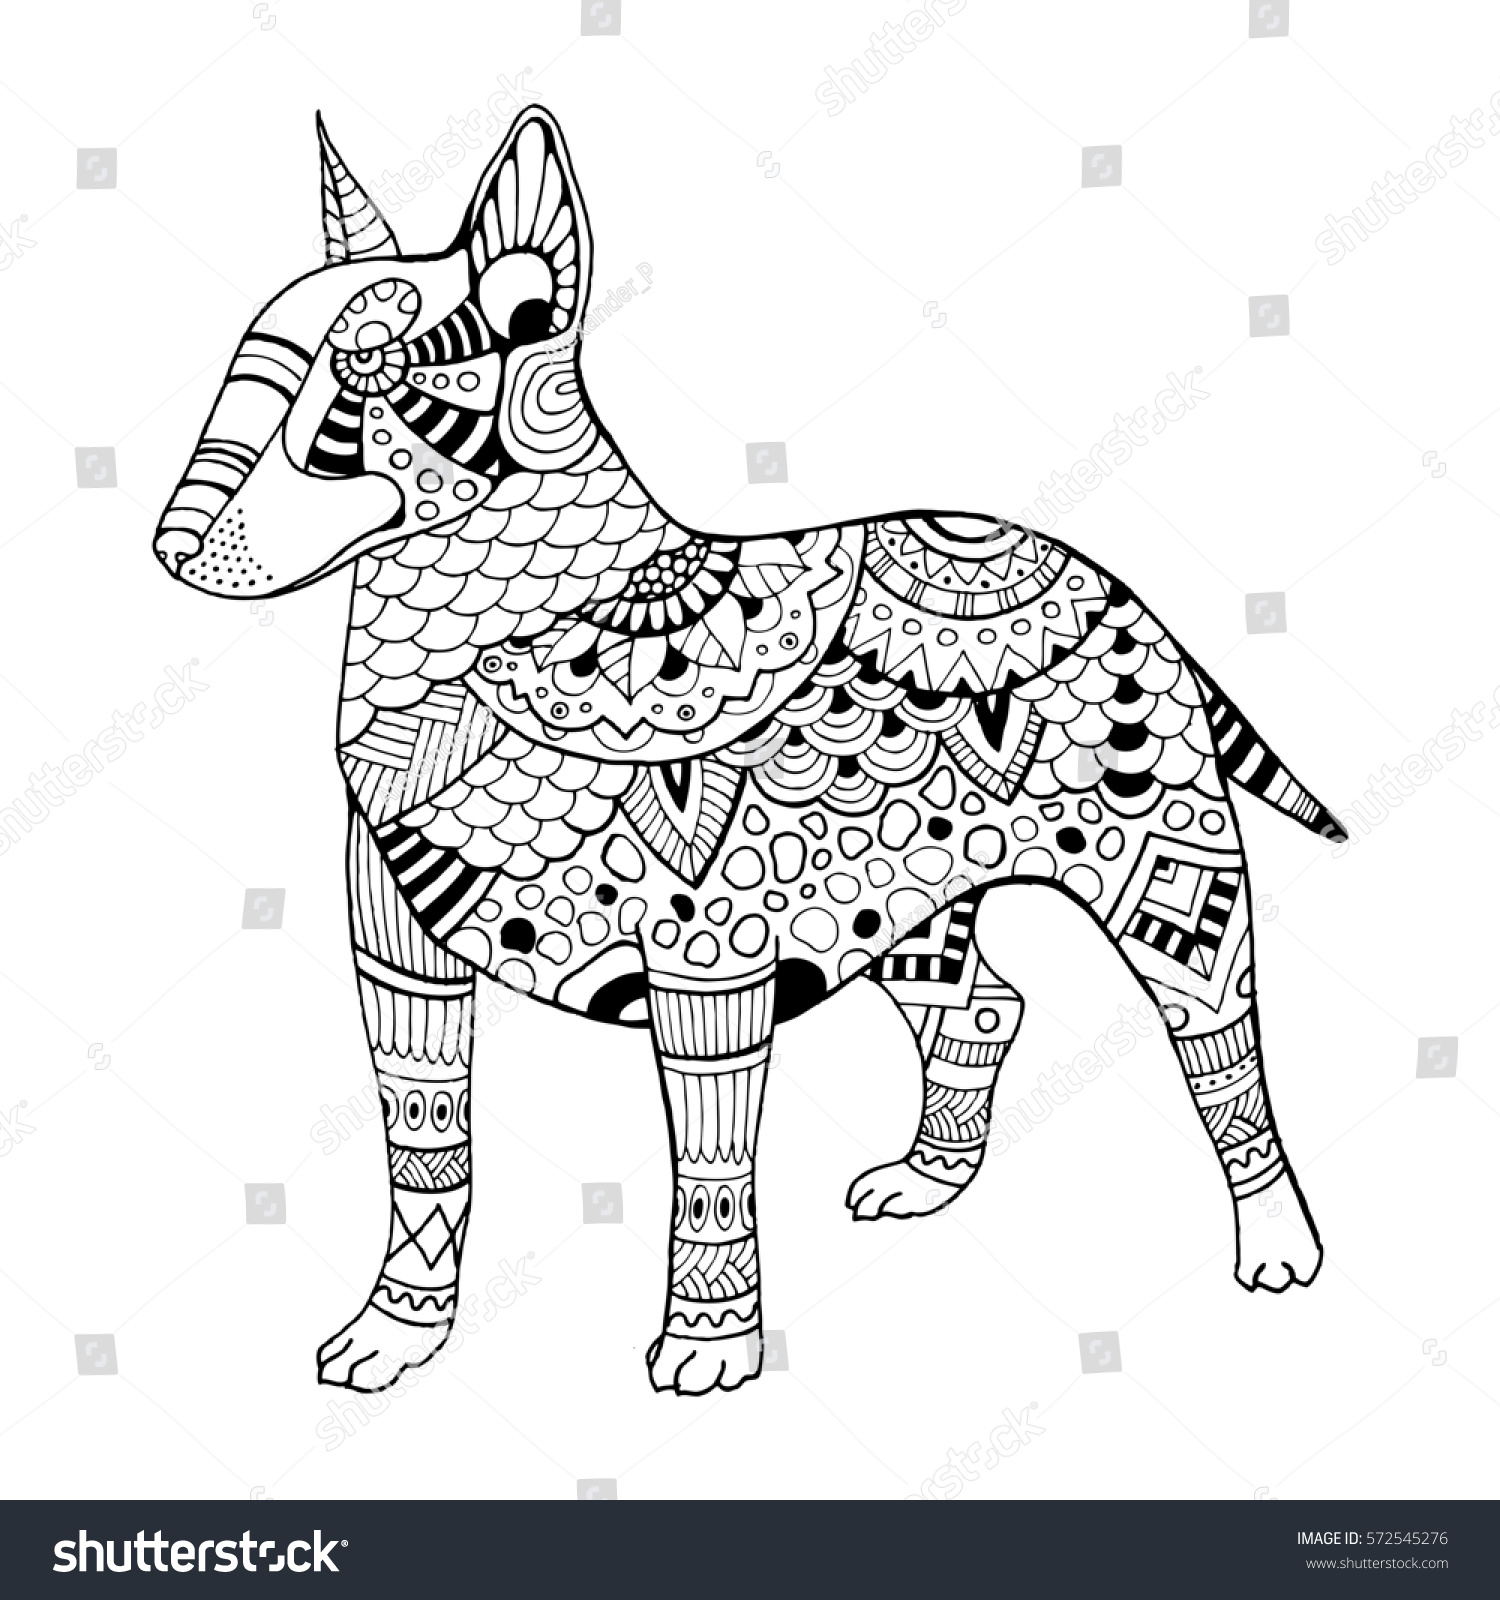 Bullterrier Dog Coloring Book Raster Illustration Stock Illustration ...